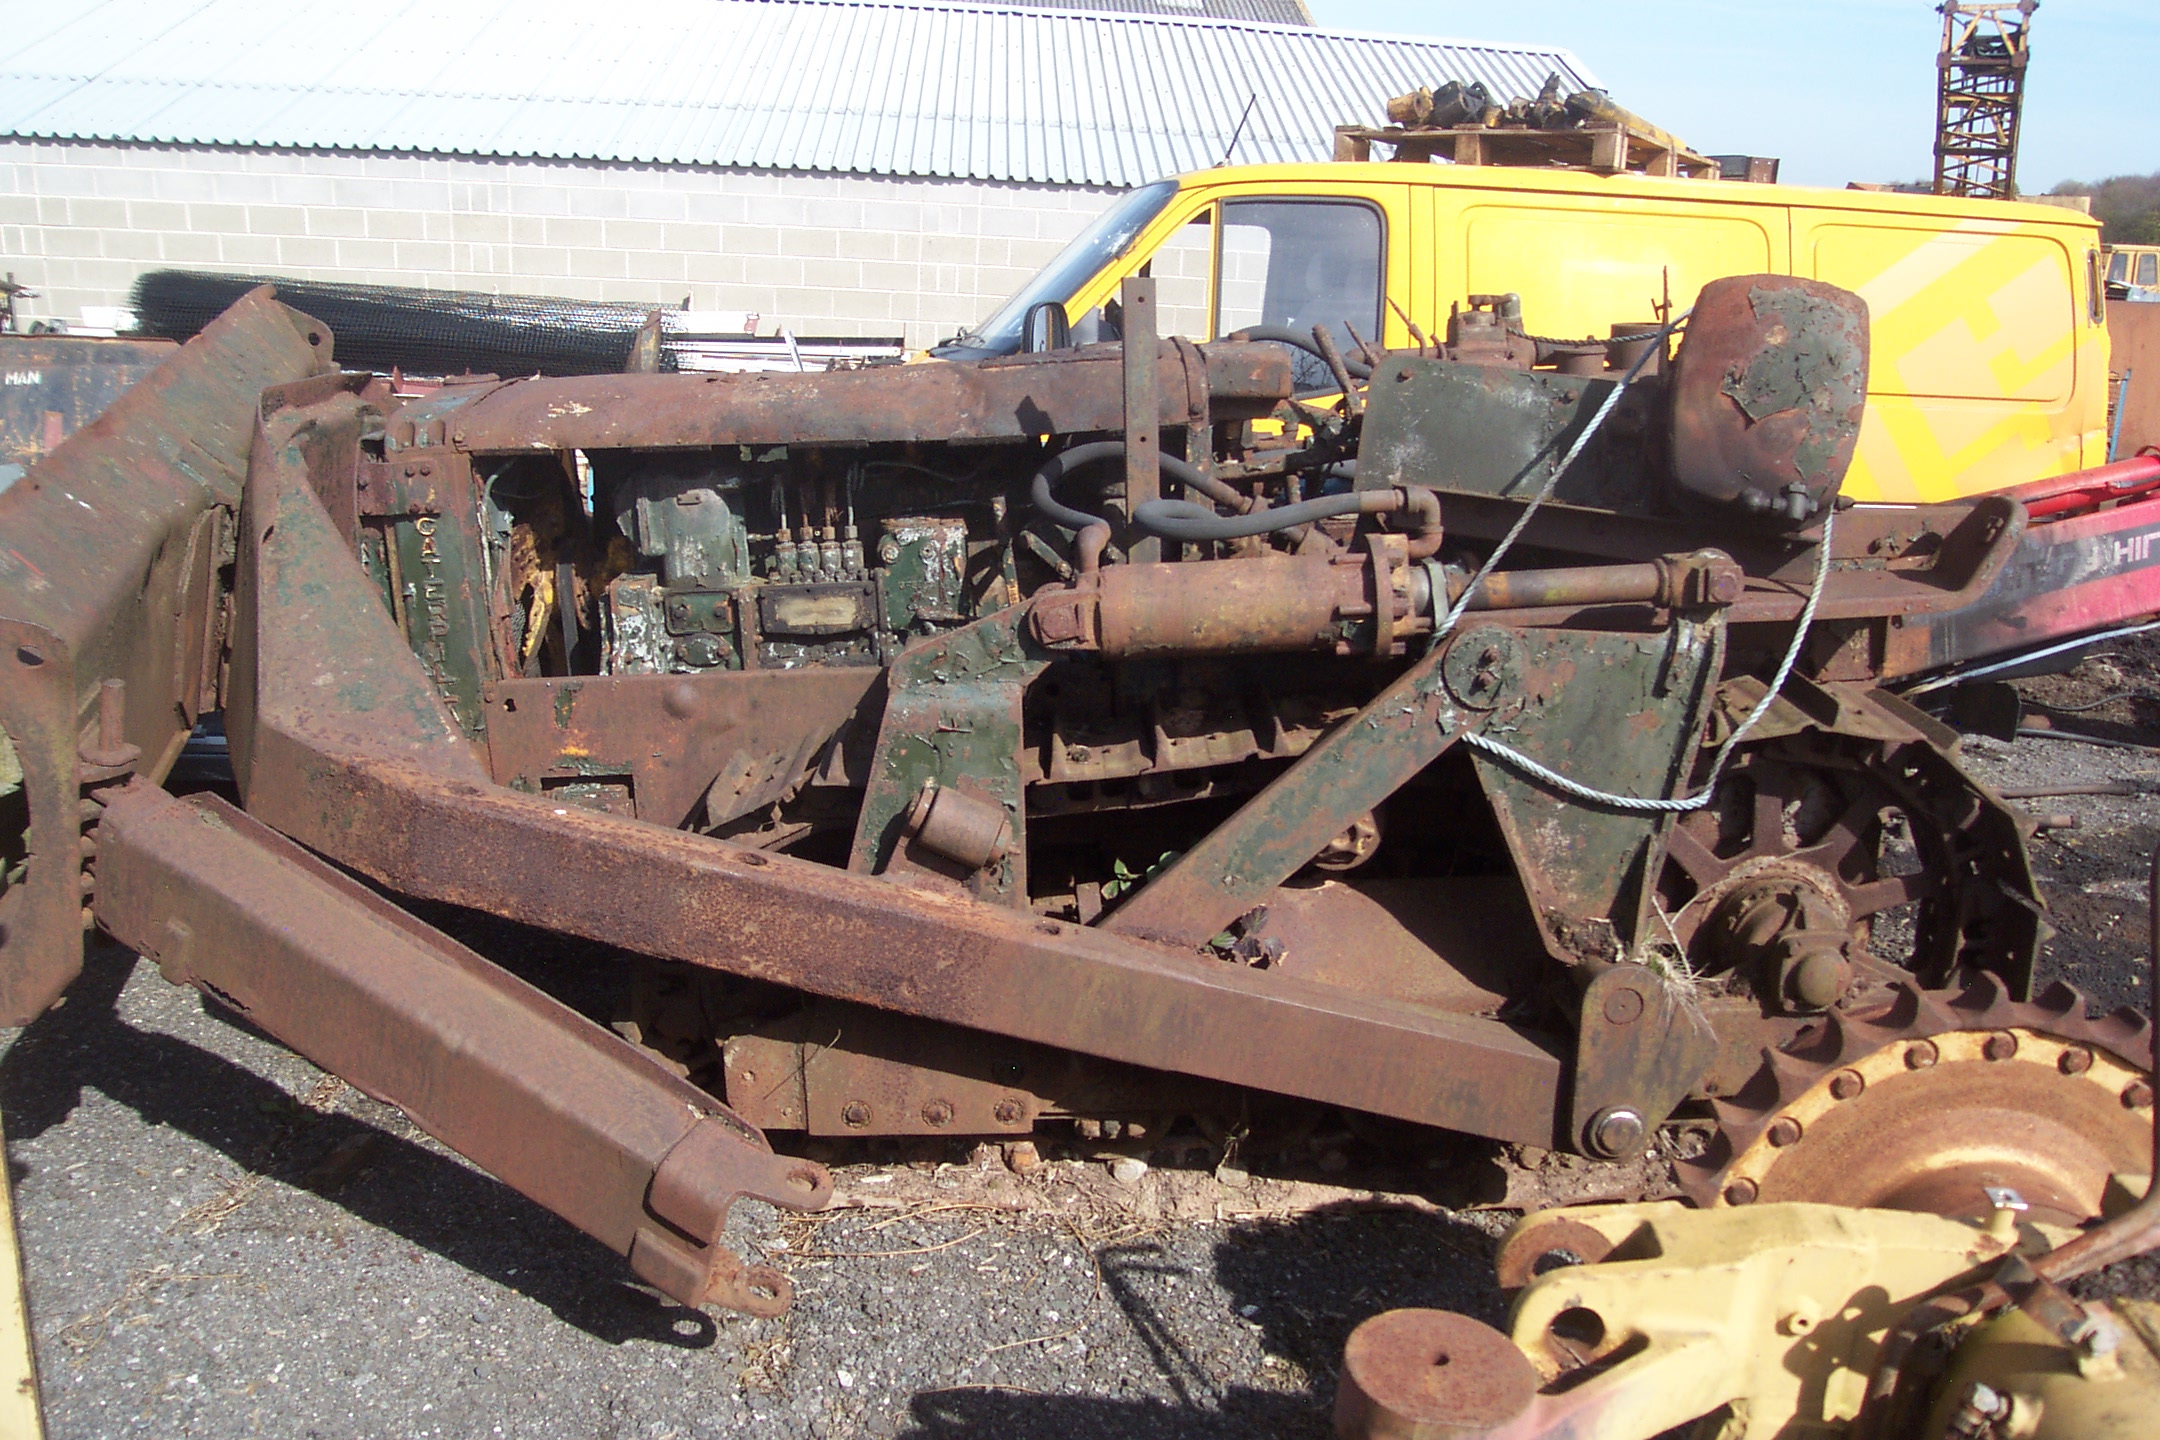 fordson tractor on craigslist with Gibson Super D 2 Tractor For Sale In Colorado on Search furthermore Ford furthermore 4873 furthermore Gallery skylars snow stuck further Viewtopic.